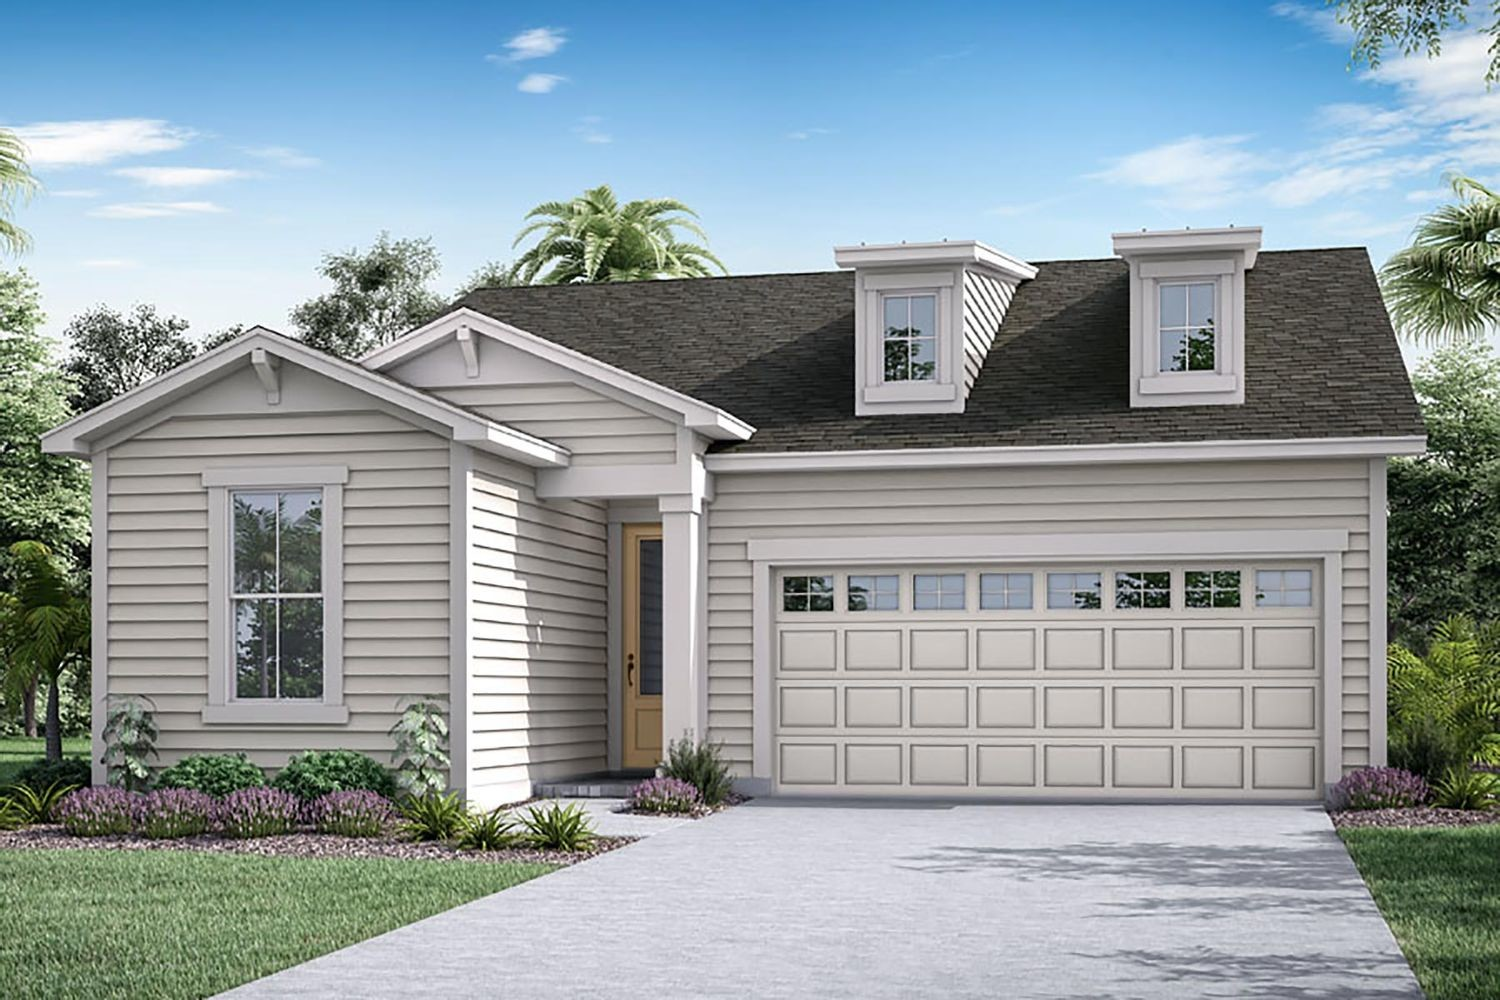 Move In Ready New Home In RiverTown - WaterSong Community